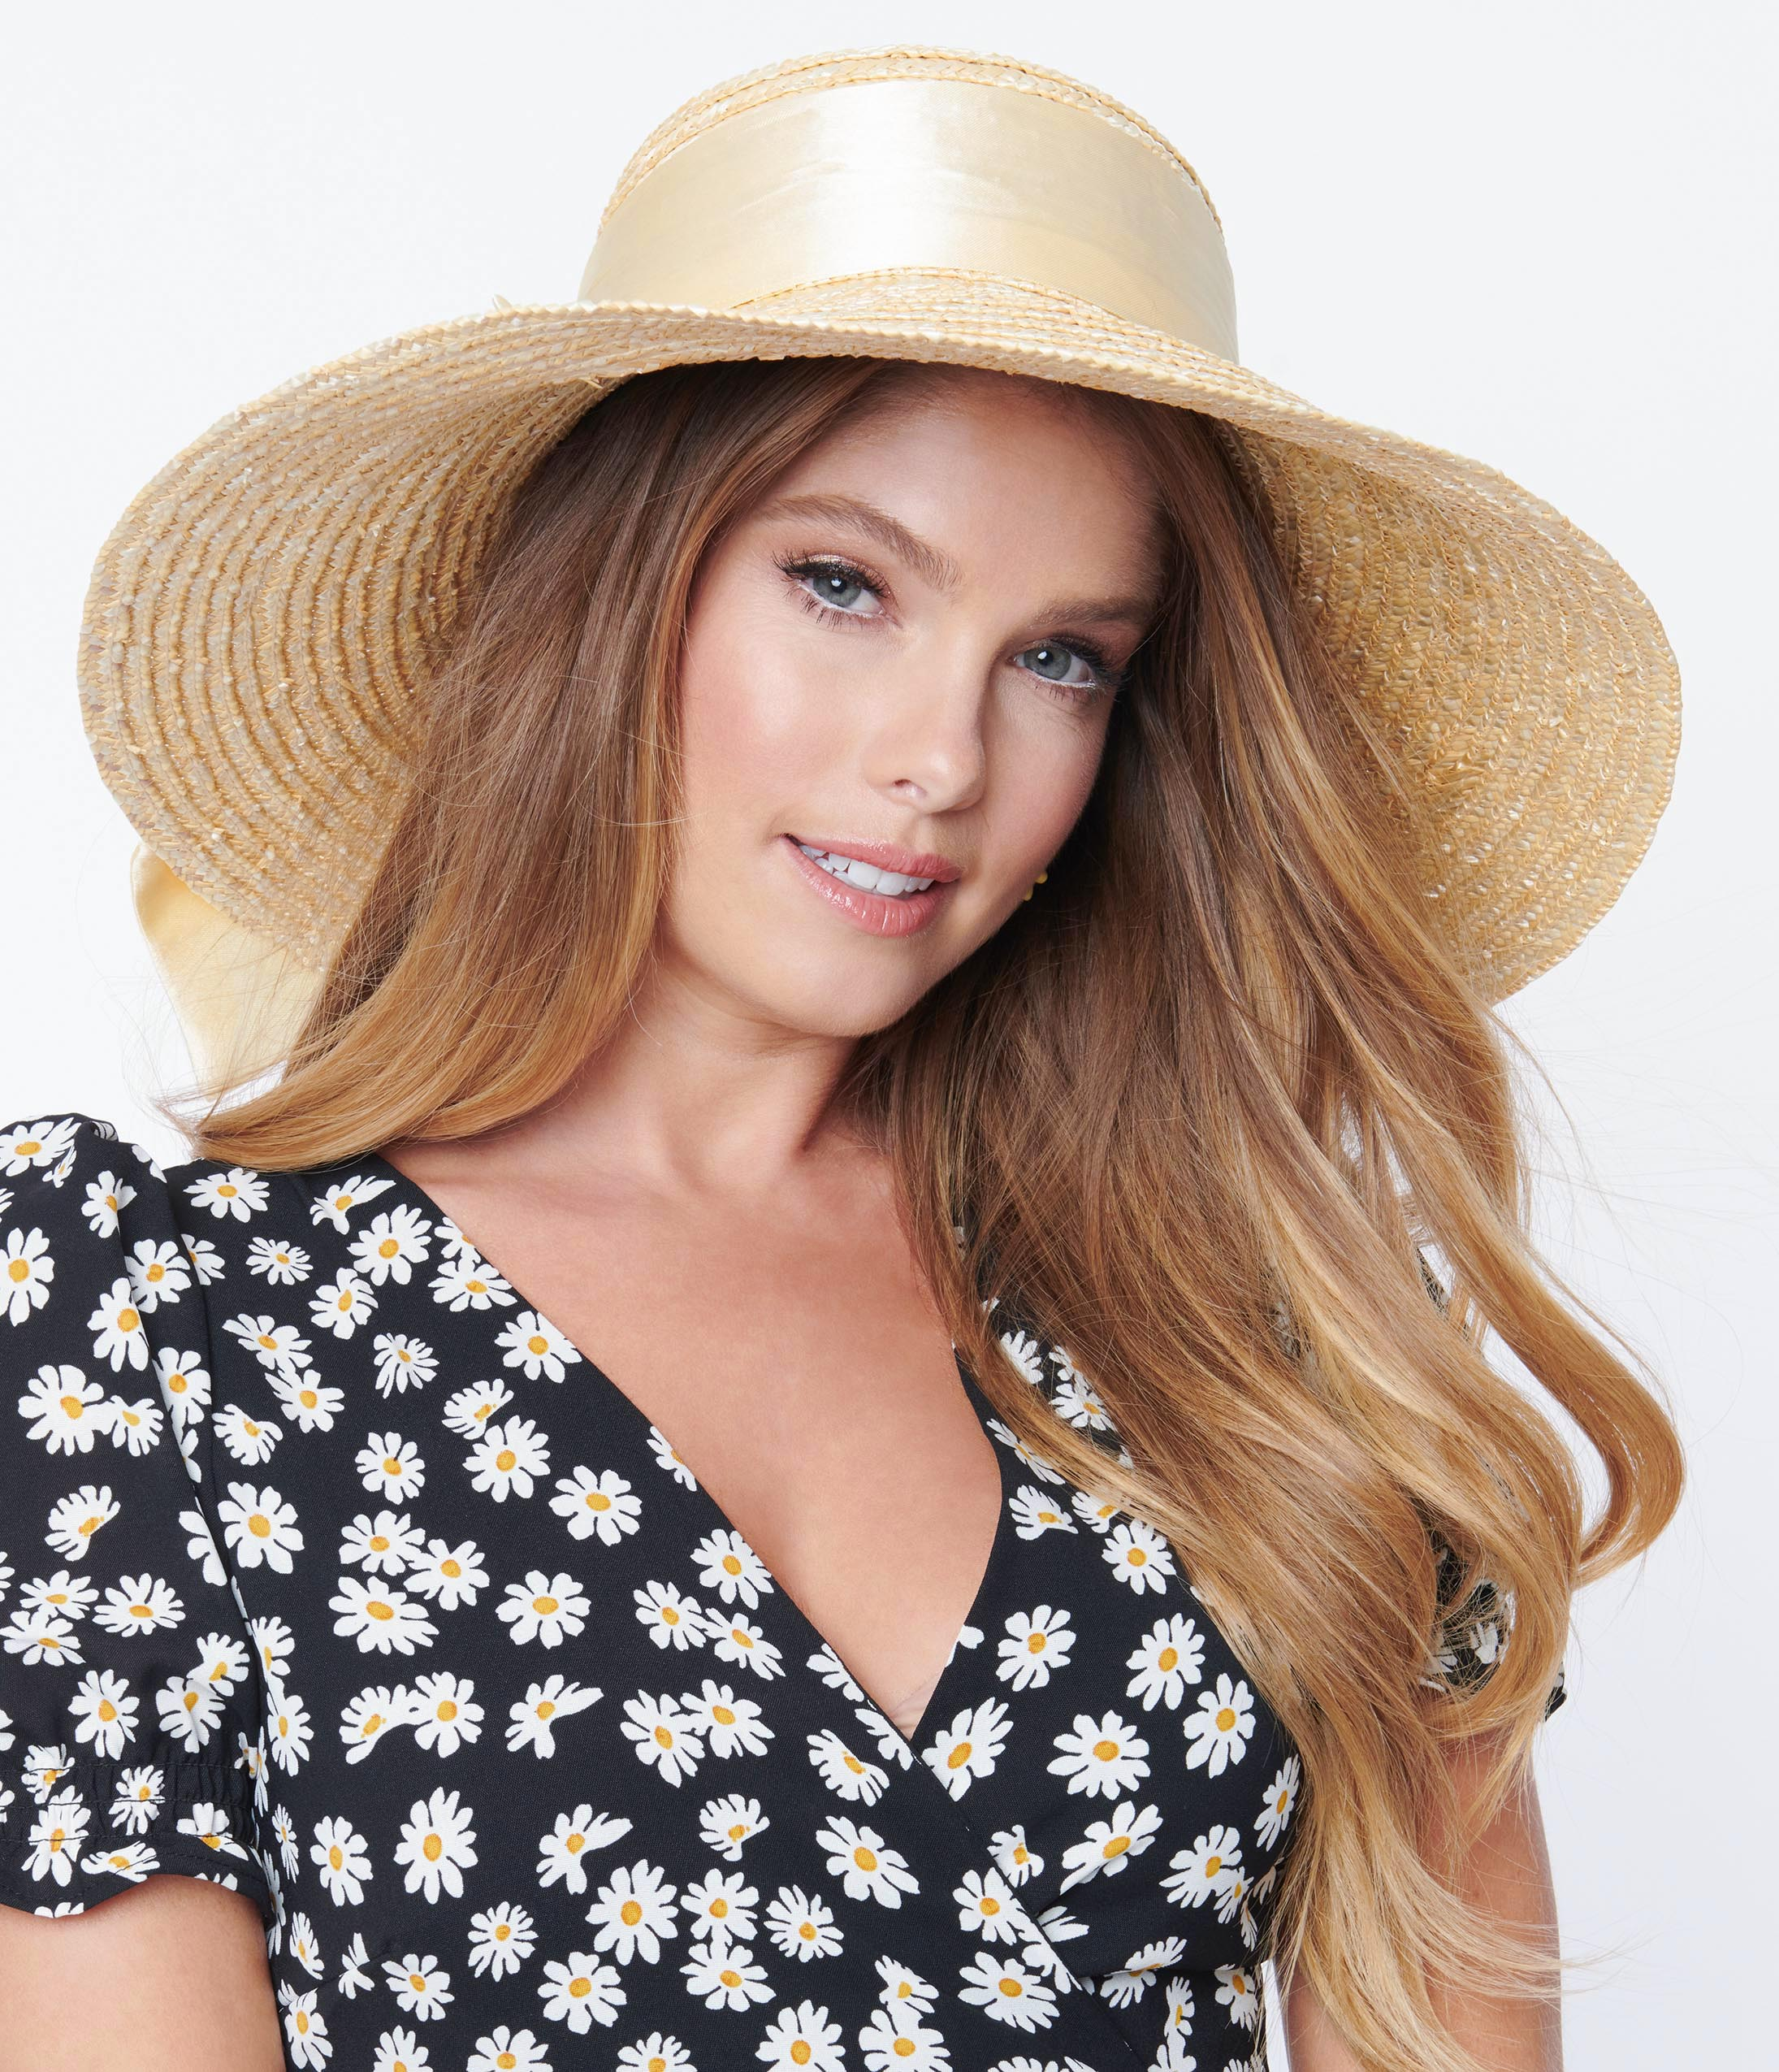 1950s Women's Hat Styles & History Straw Sun Hat With Bow $42.00 AT vintagedancer.com